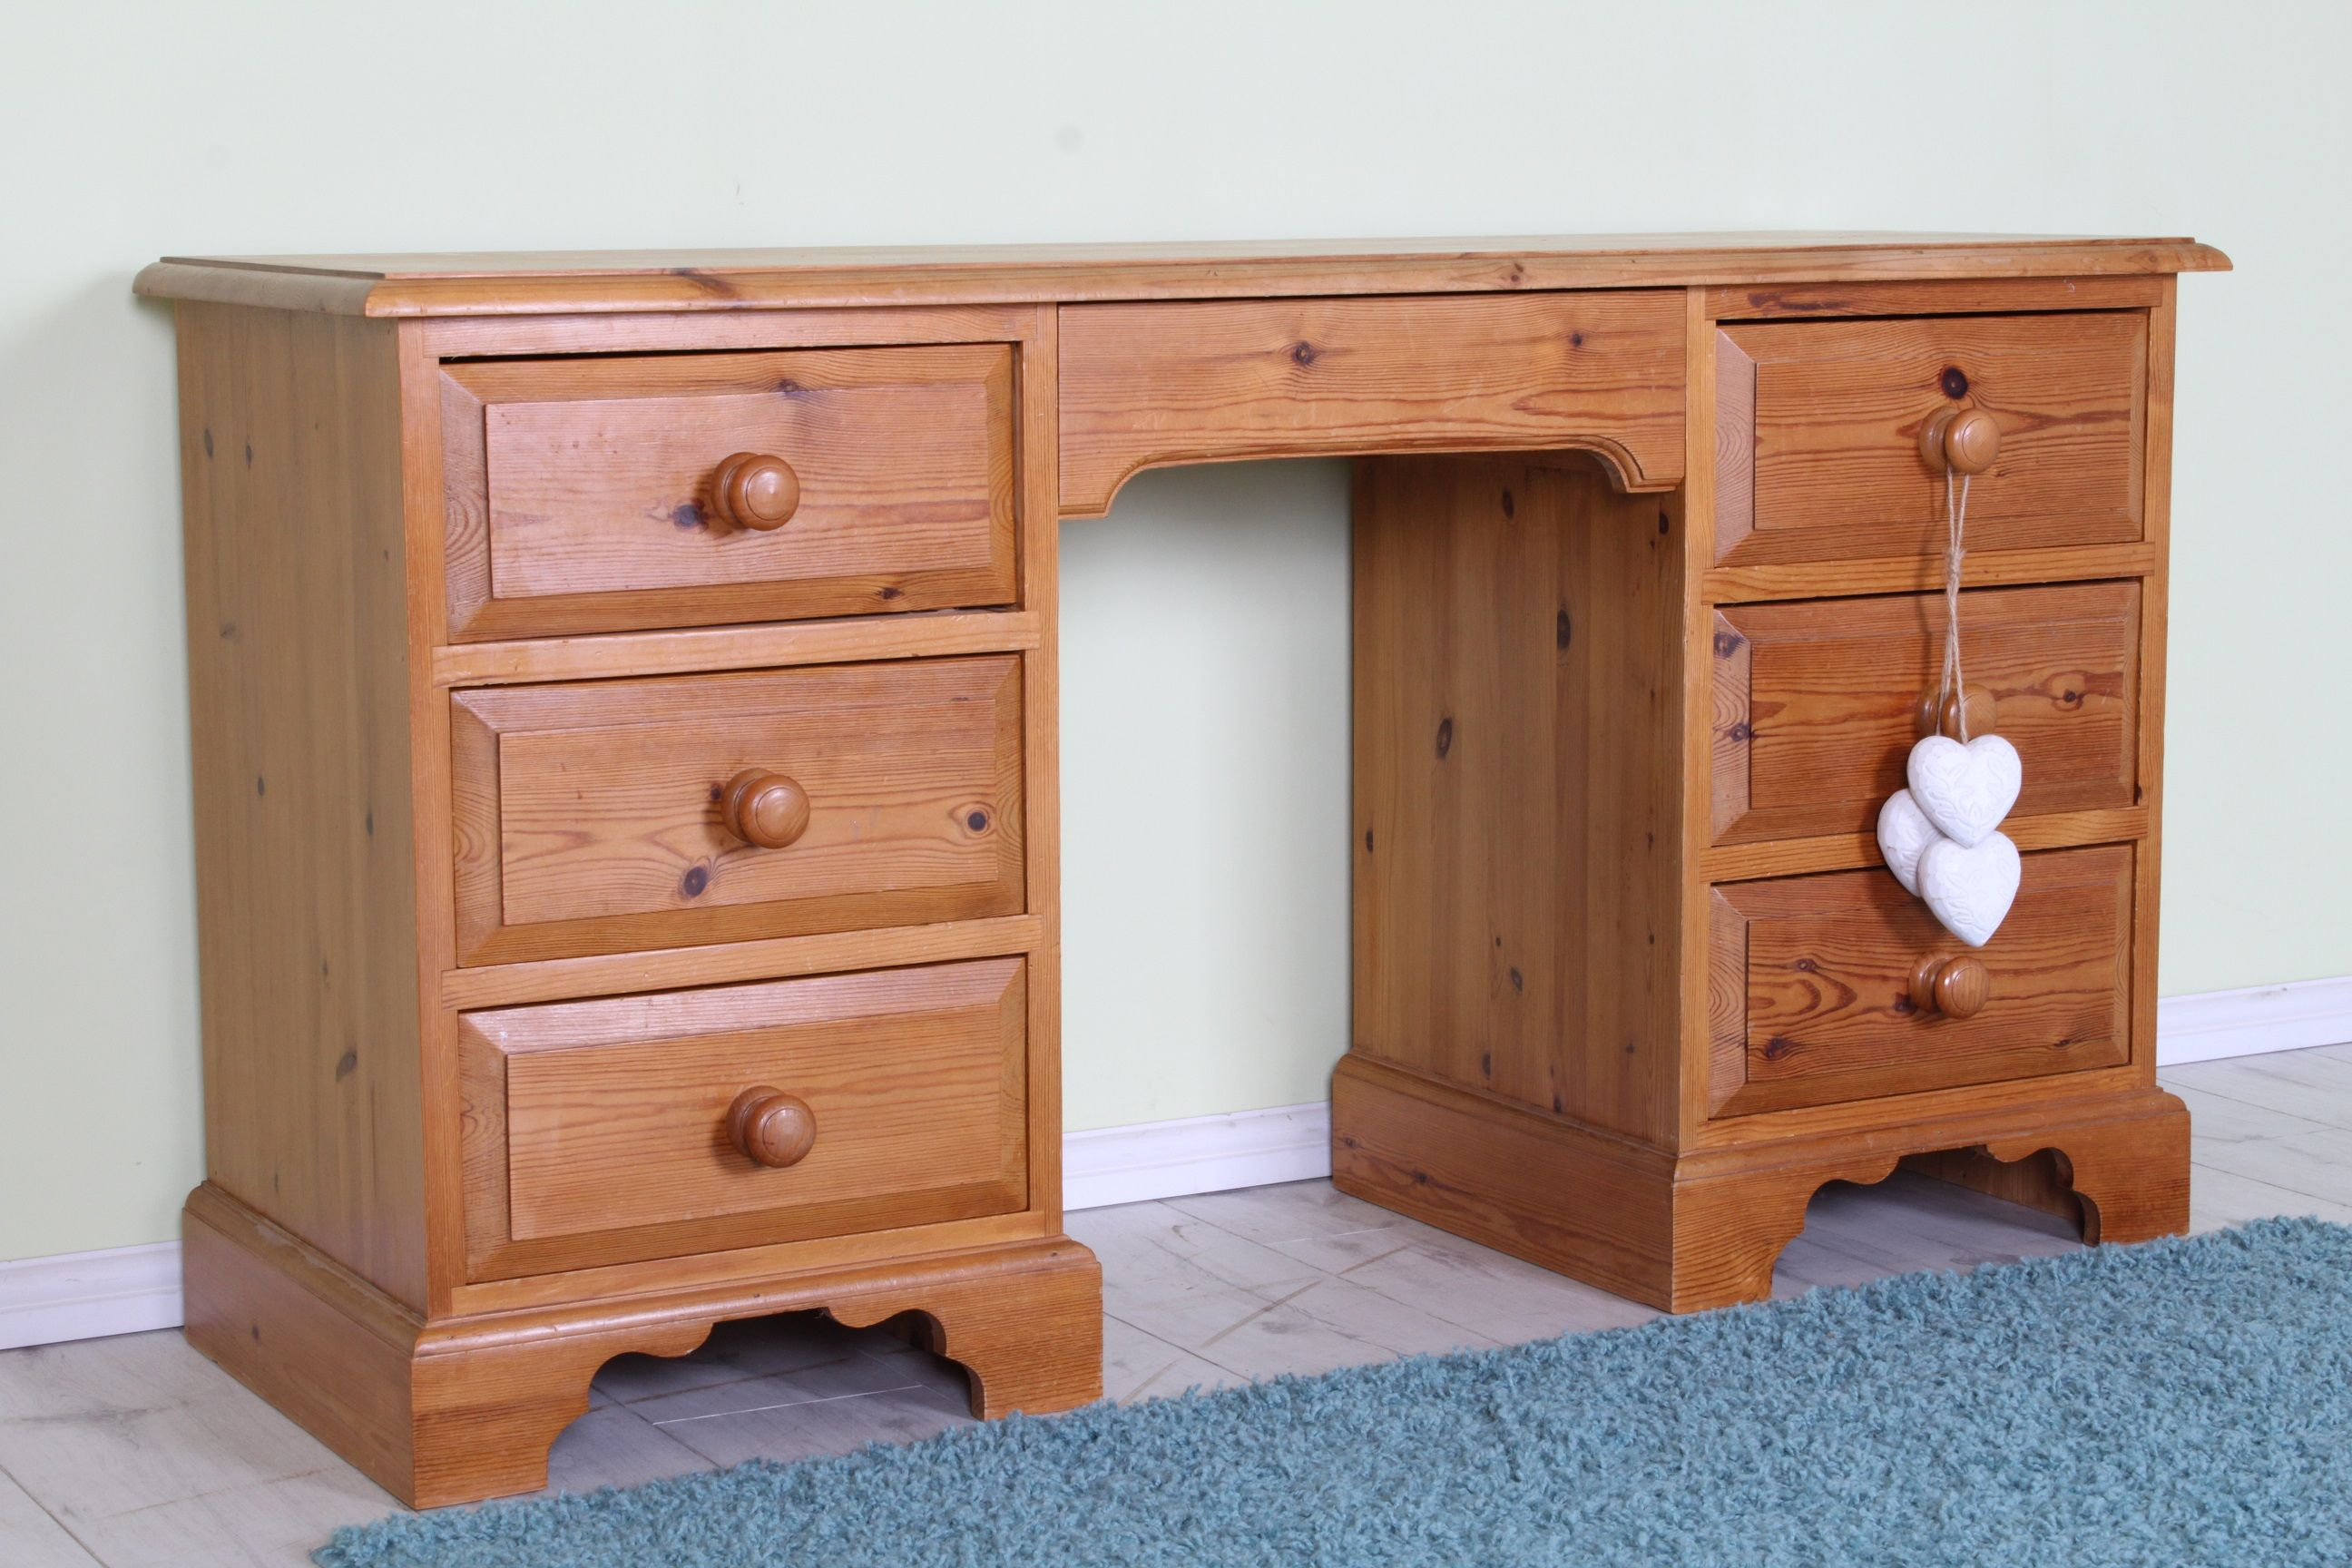 looks vanity drawer floor grey cool drawers with rectangle in carved legs amazing bedroom three mirror and offers white wooden on dressing placed table